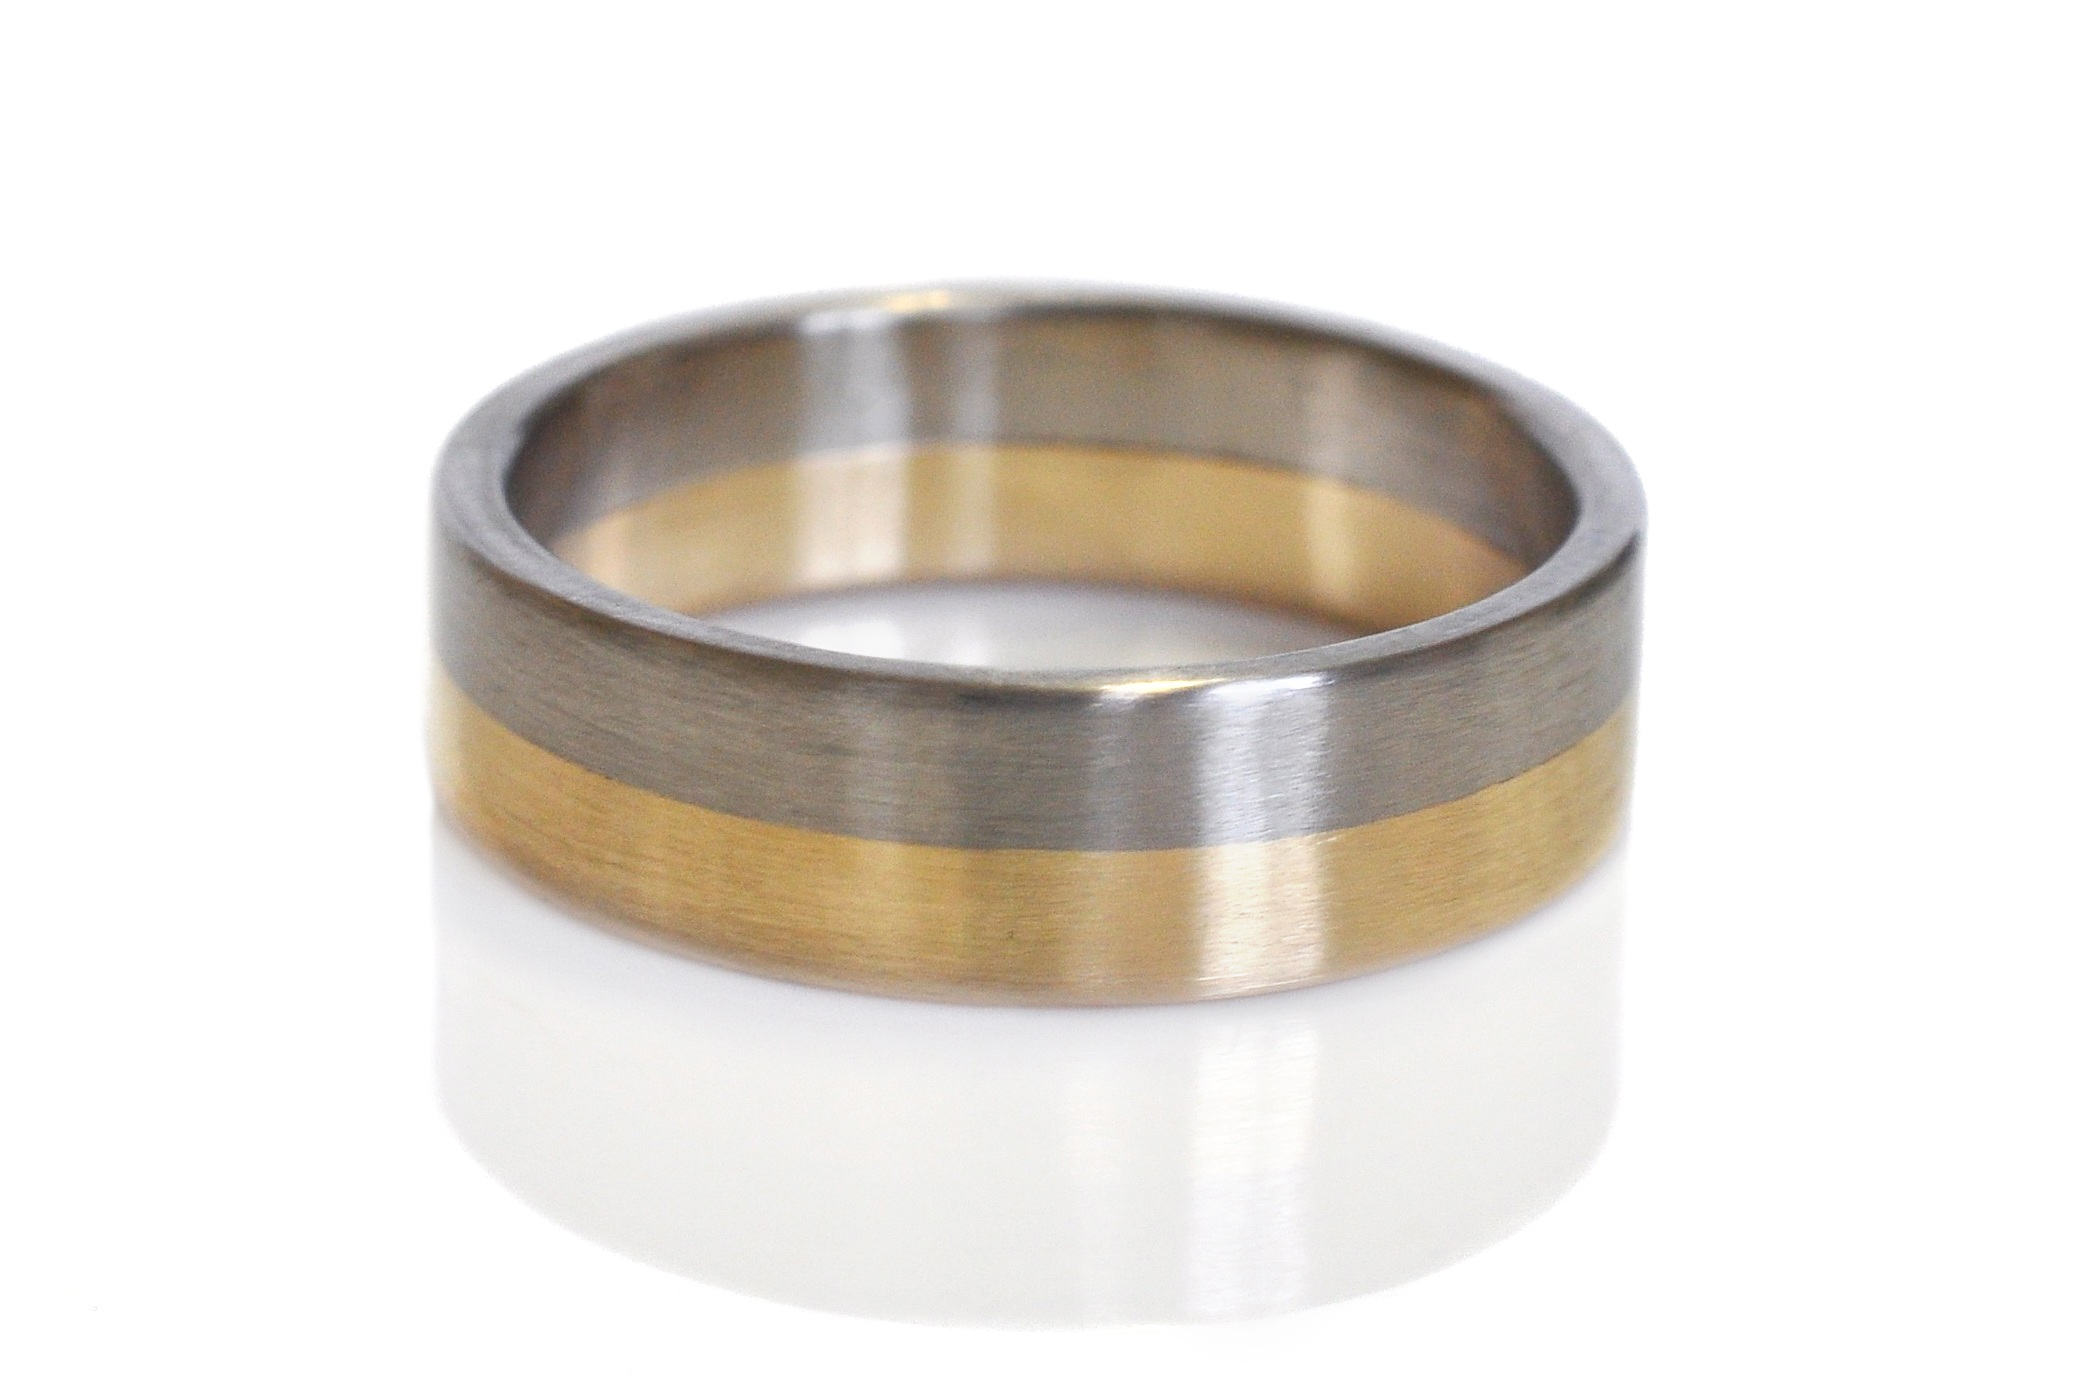 For Andrew, we melted down his grandfathers wedding band to make the gold section of this ring and paired it with 500 palladium for contrast. This is a very special wedding band.